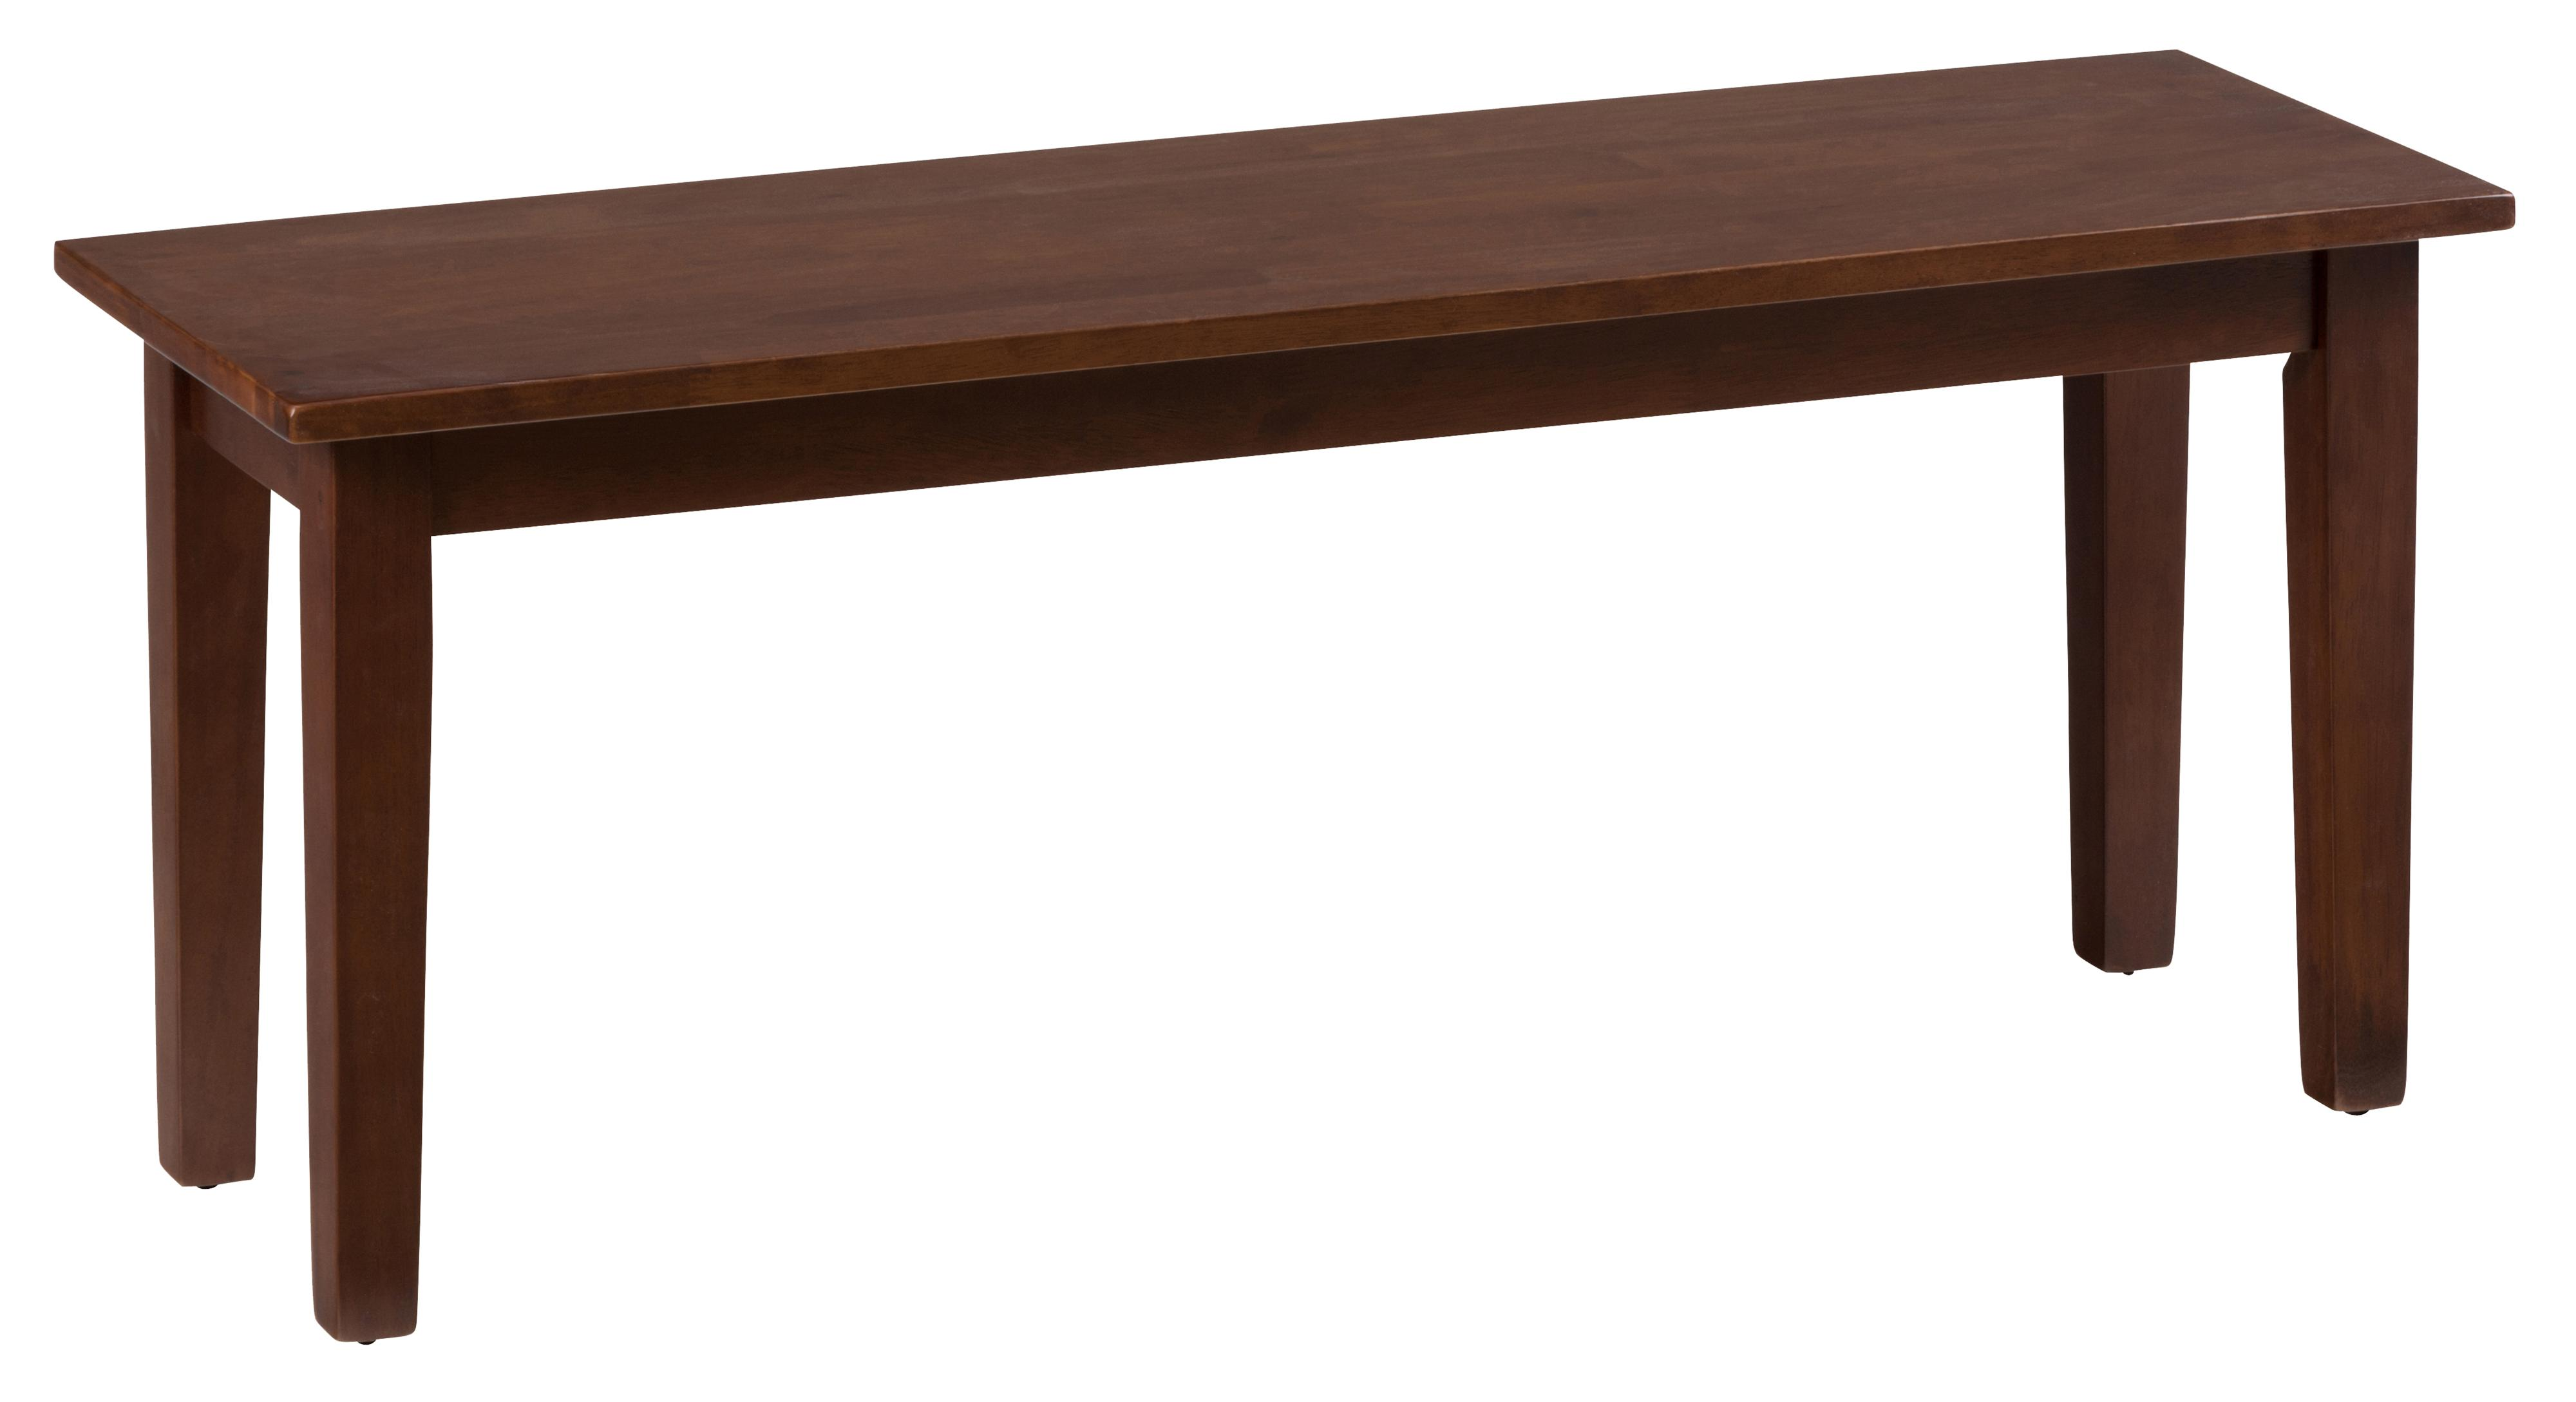 Jofran Simplicity Wooden Dining Room Table Bench Reeds  : products2Fjofran2Fcolor2Fsimplicity2035220 2045220 20552452 14kd b4 from www.reedsfurniture.com size 4000 x 2177 jpeg 275kB